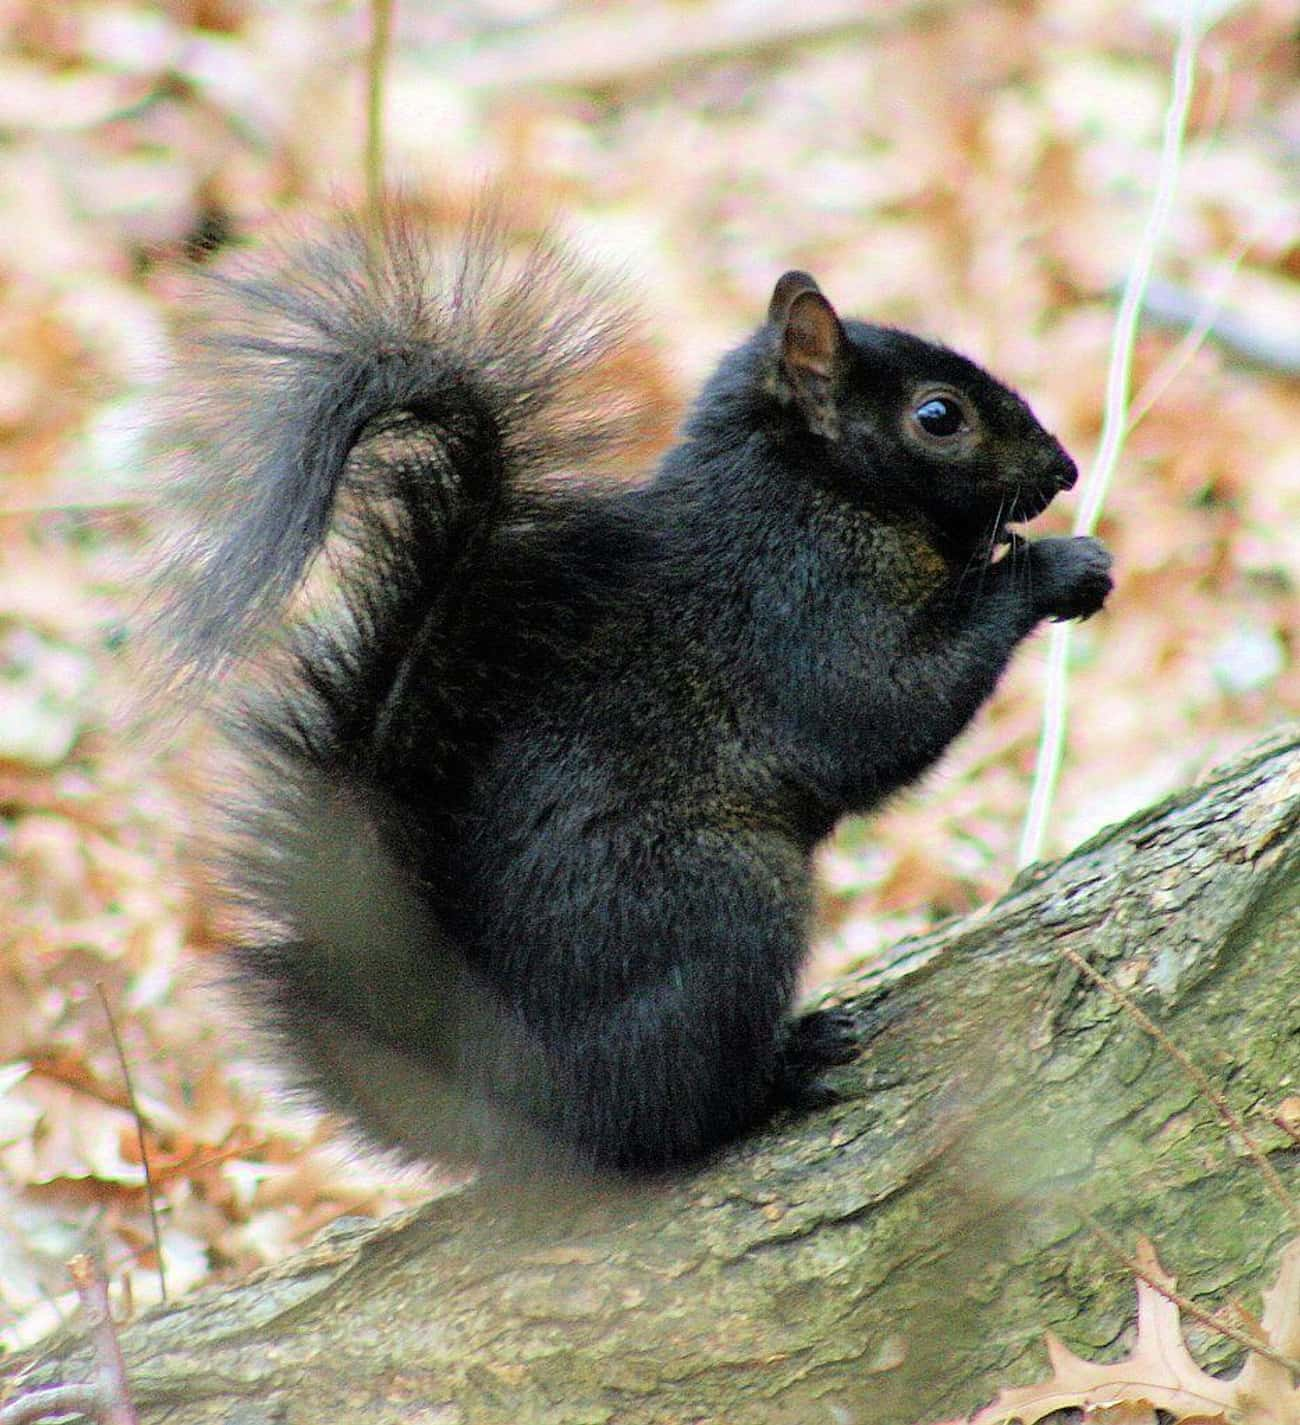 Golden-Mantled Ground Squirrel is listed (or ranked) 4 on the list 17 Photos Of Melanistic (All Black) Animals That'll Leave You In Awe Of Mother Nature